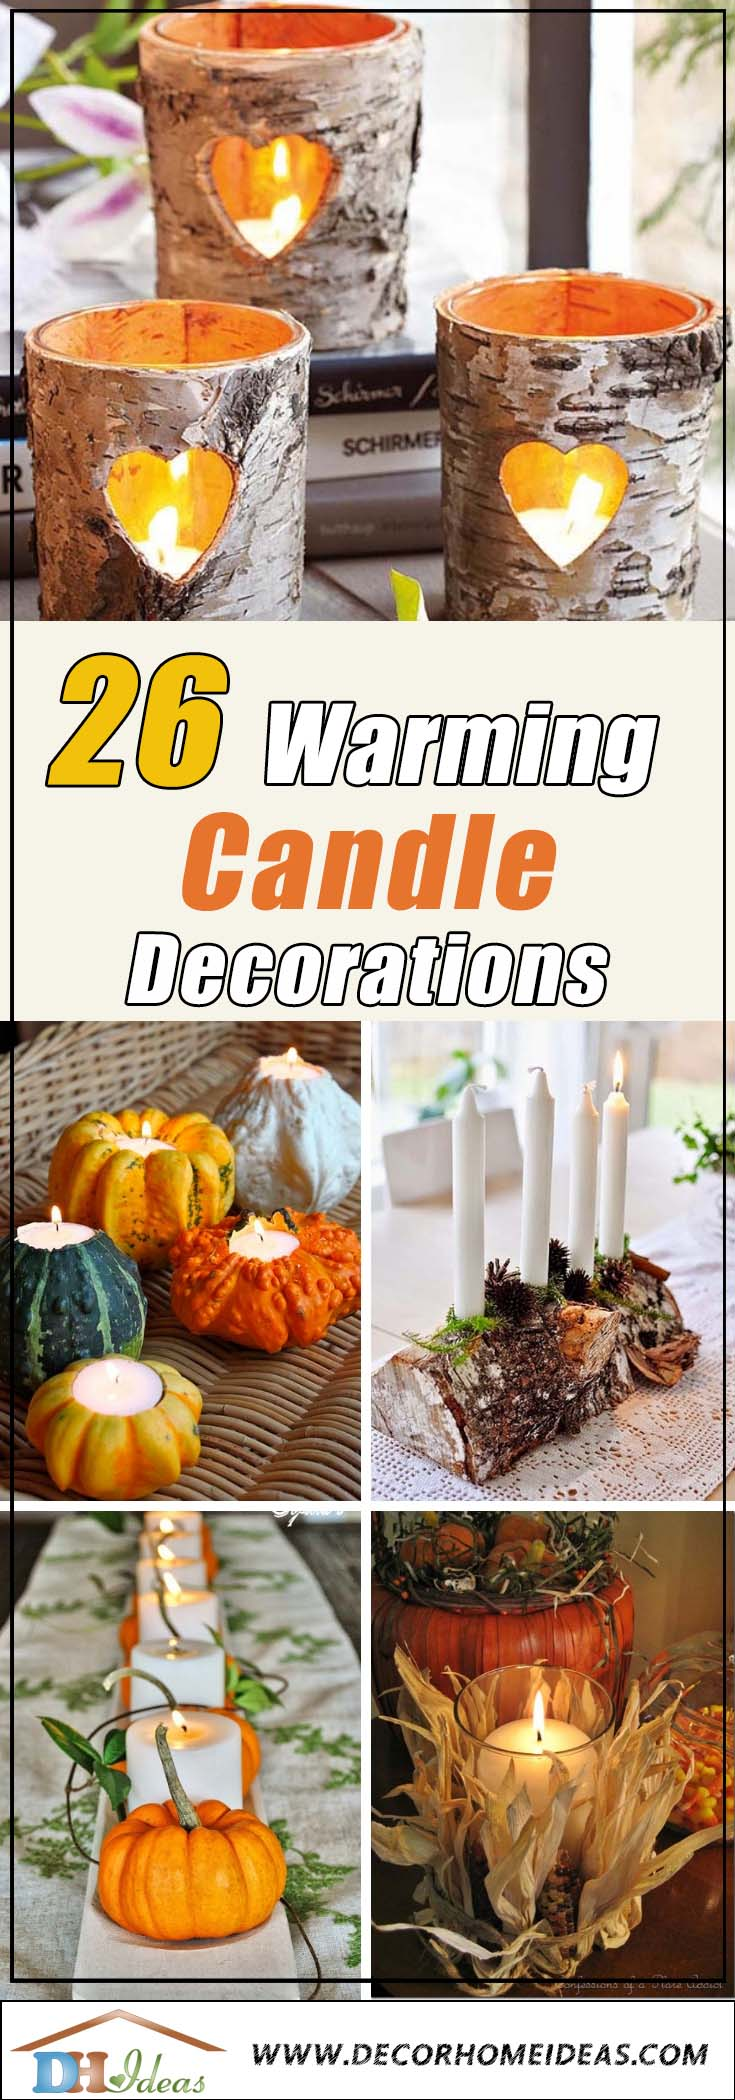 Fall Candle Decoration Ideas #falldecor #fallideas #candles #candlesdecor #decorhomeideas